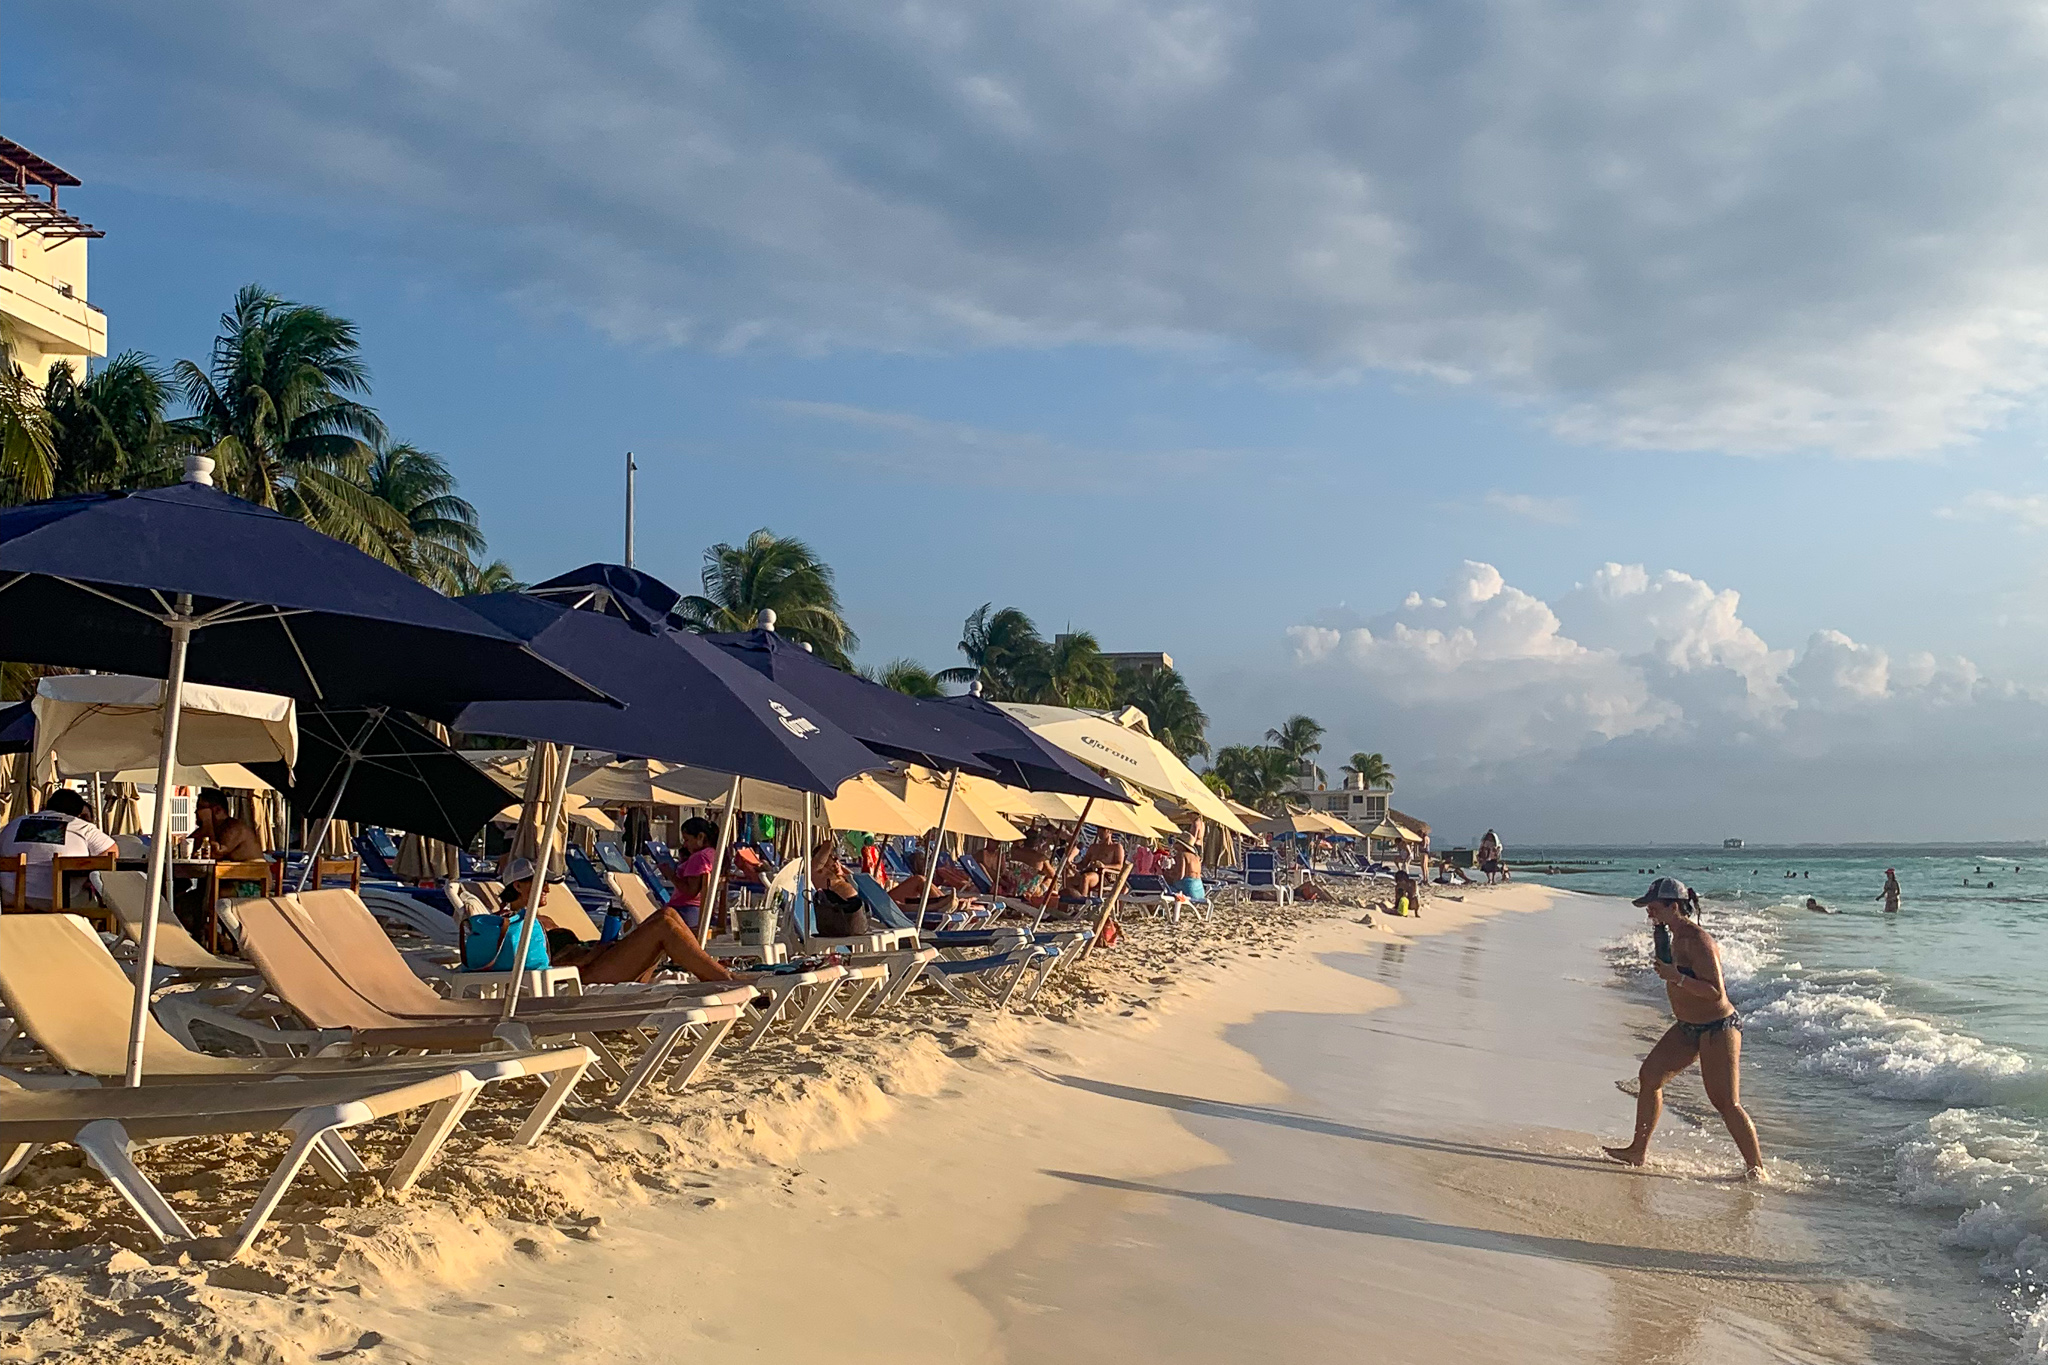 There are beach clubs everywhere, so you can easily find, food, drink, and water.